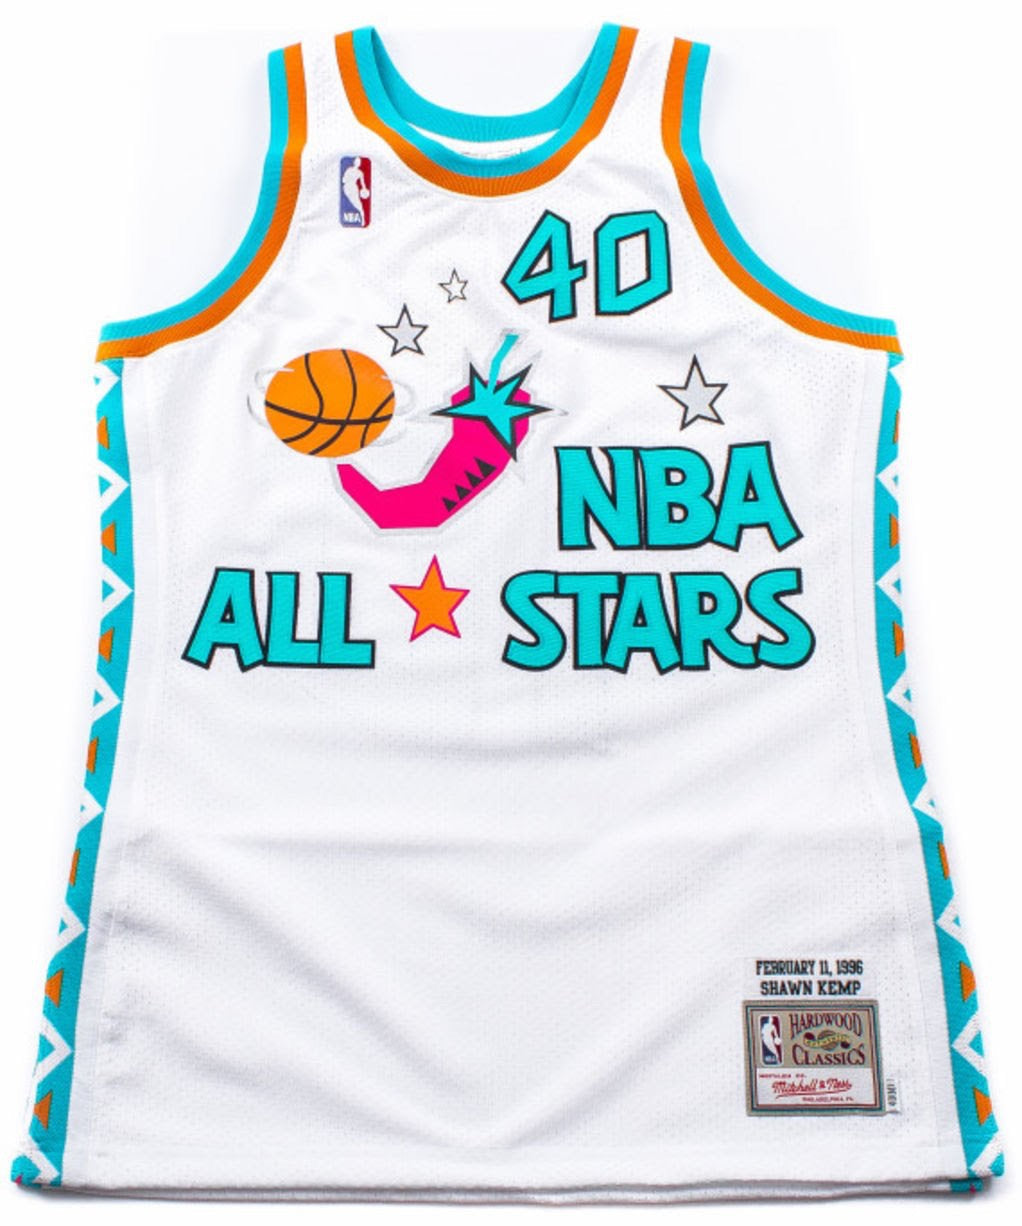 da2b0a00803 Packer Shoes x Mitchell and Ness Authentice Jersey 1996 NBA All Stars Shawn  Kemp